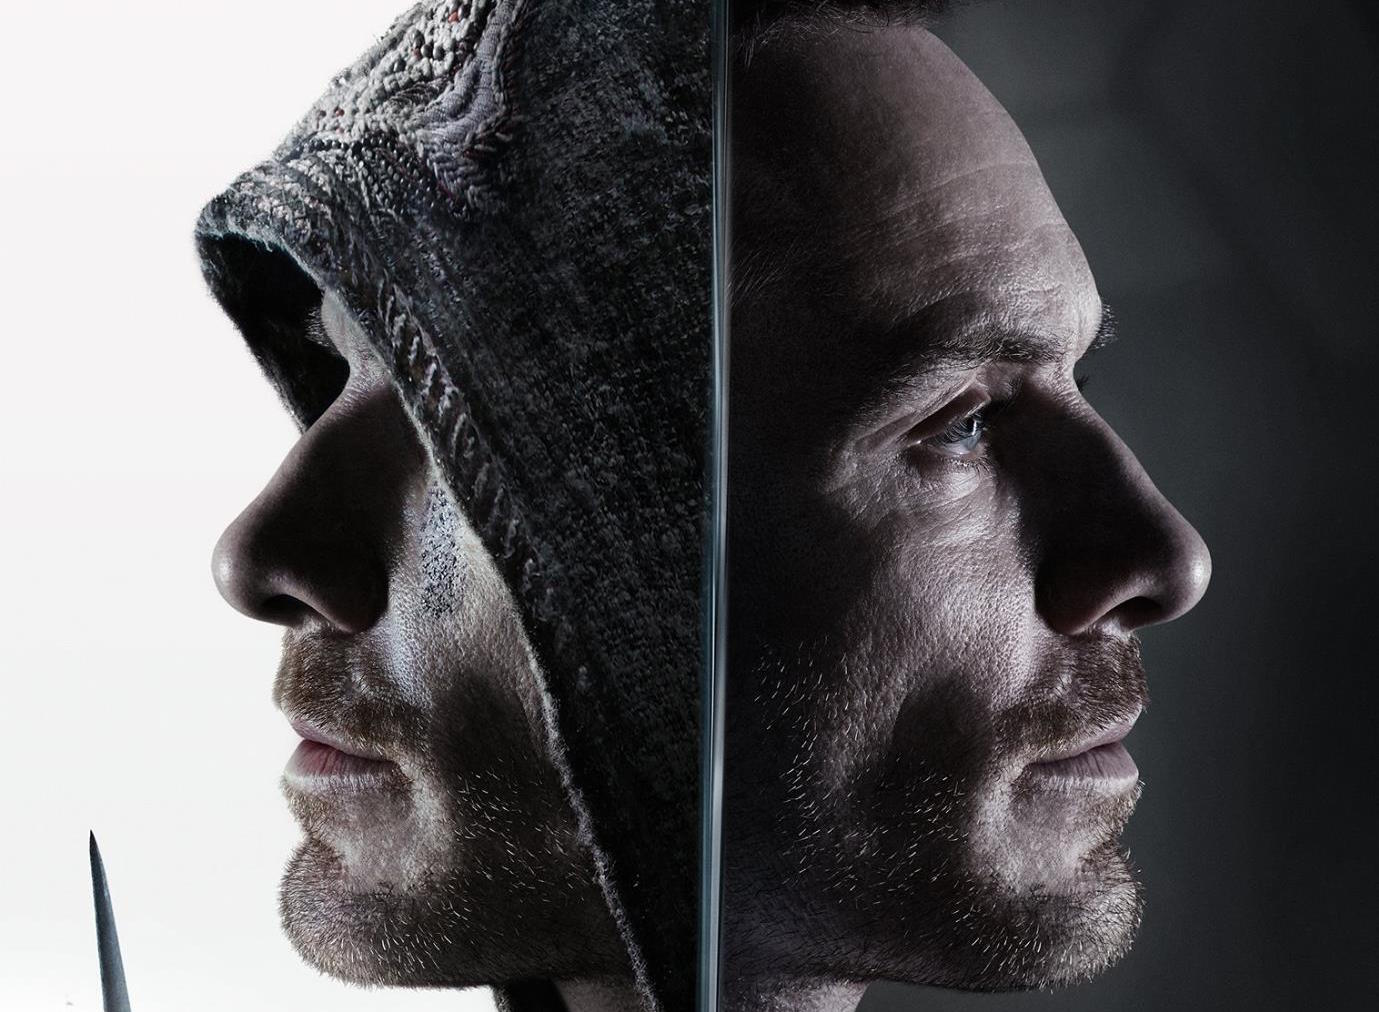 New 'Assassin's Creed' Trailer & Poster Show Off the Past & Present